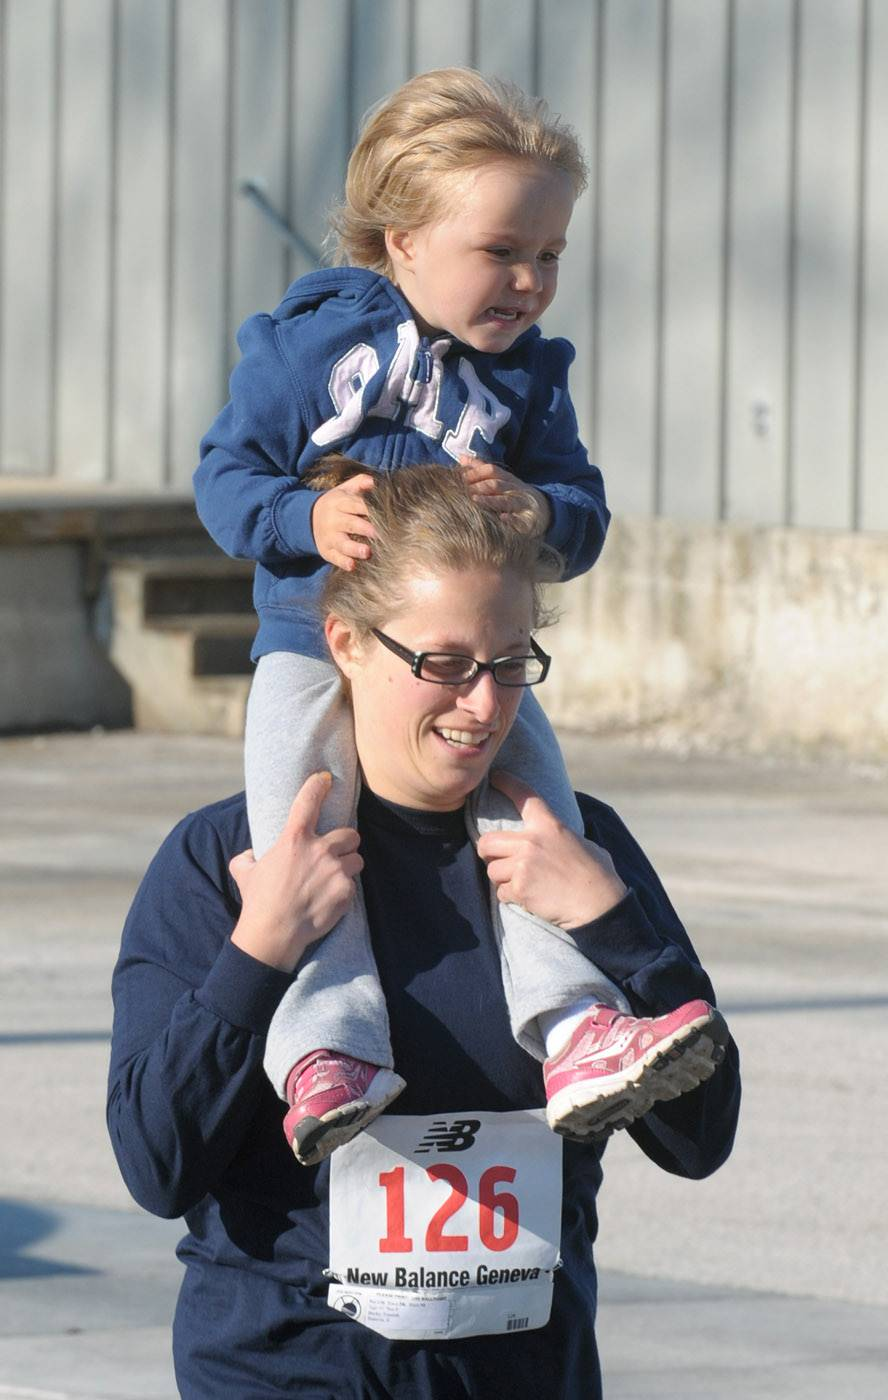 Becky Teusink of Batavia runs with her 2-year-old daughter, Kayleigh, on her shoulders in the Batavia Mothers' Club Foundation's 14th annual Fox Trot 5K Saturday. This is the first year she has run in the event.